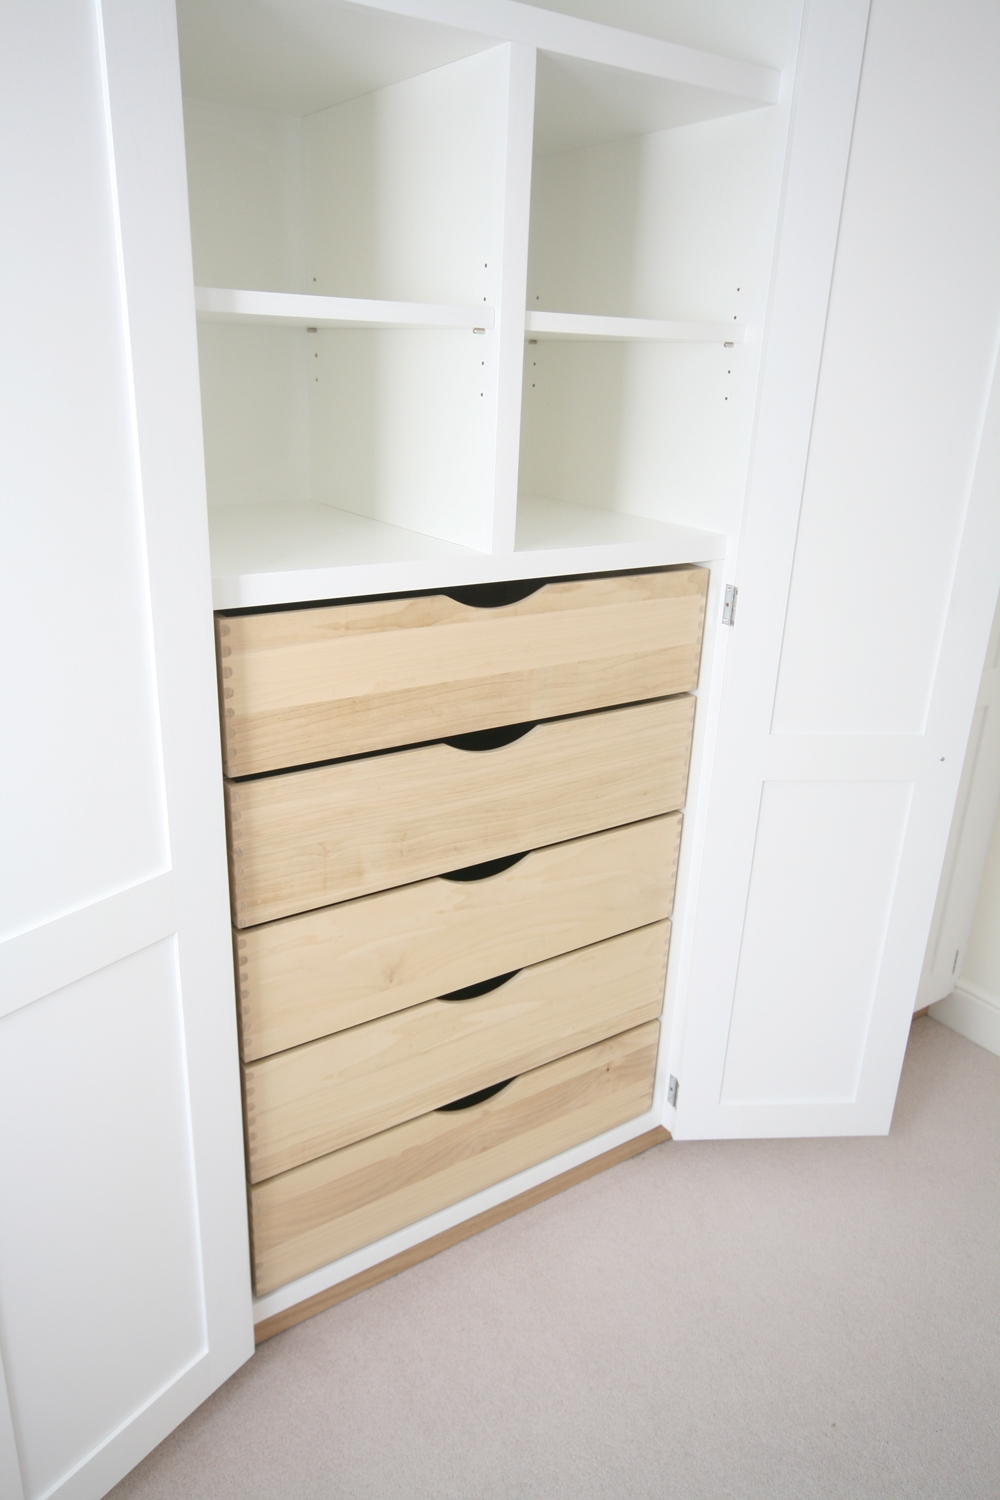 Wall To Wall Fitted Wardrobes With Drawers In Drawers For Fitted Wardrobes (View 11 of 15)